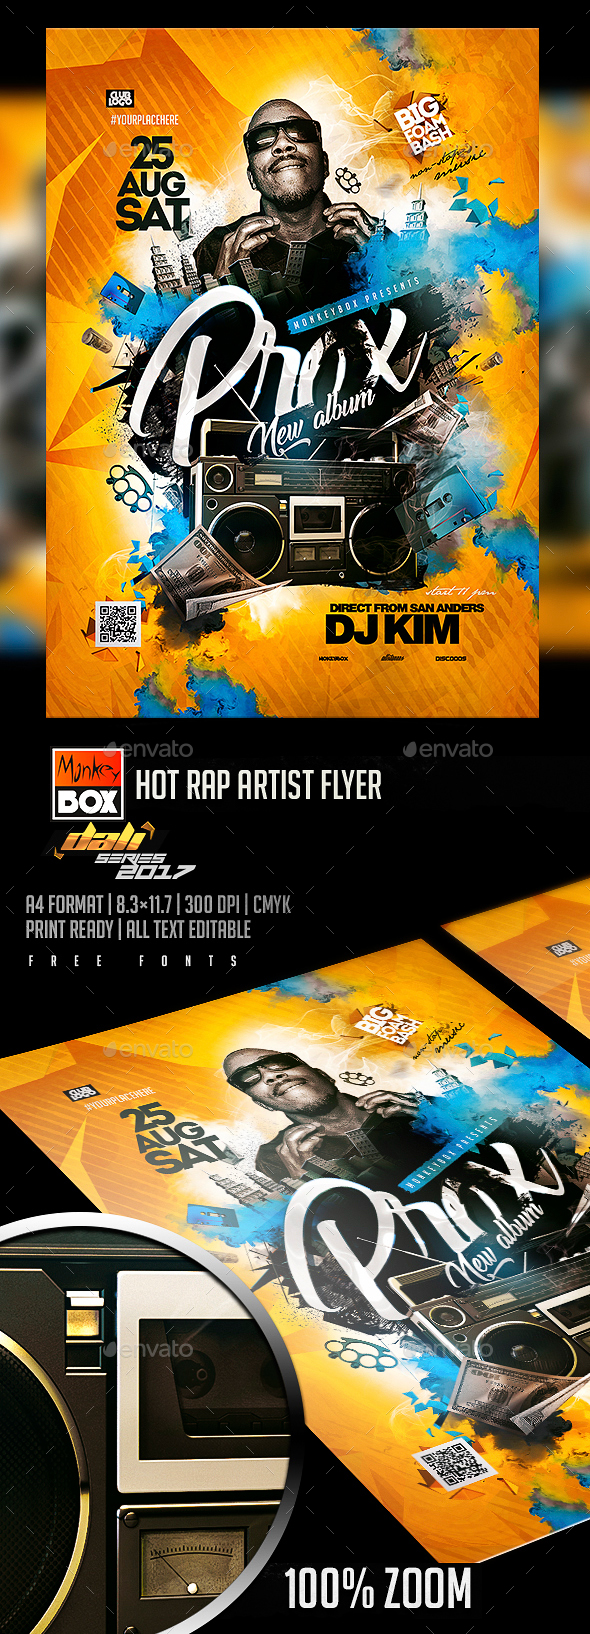 Hot Rap Artist Flyer - Flyers Print Templates